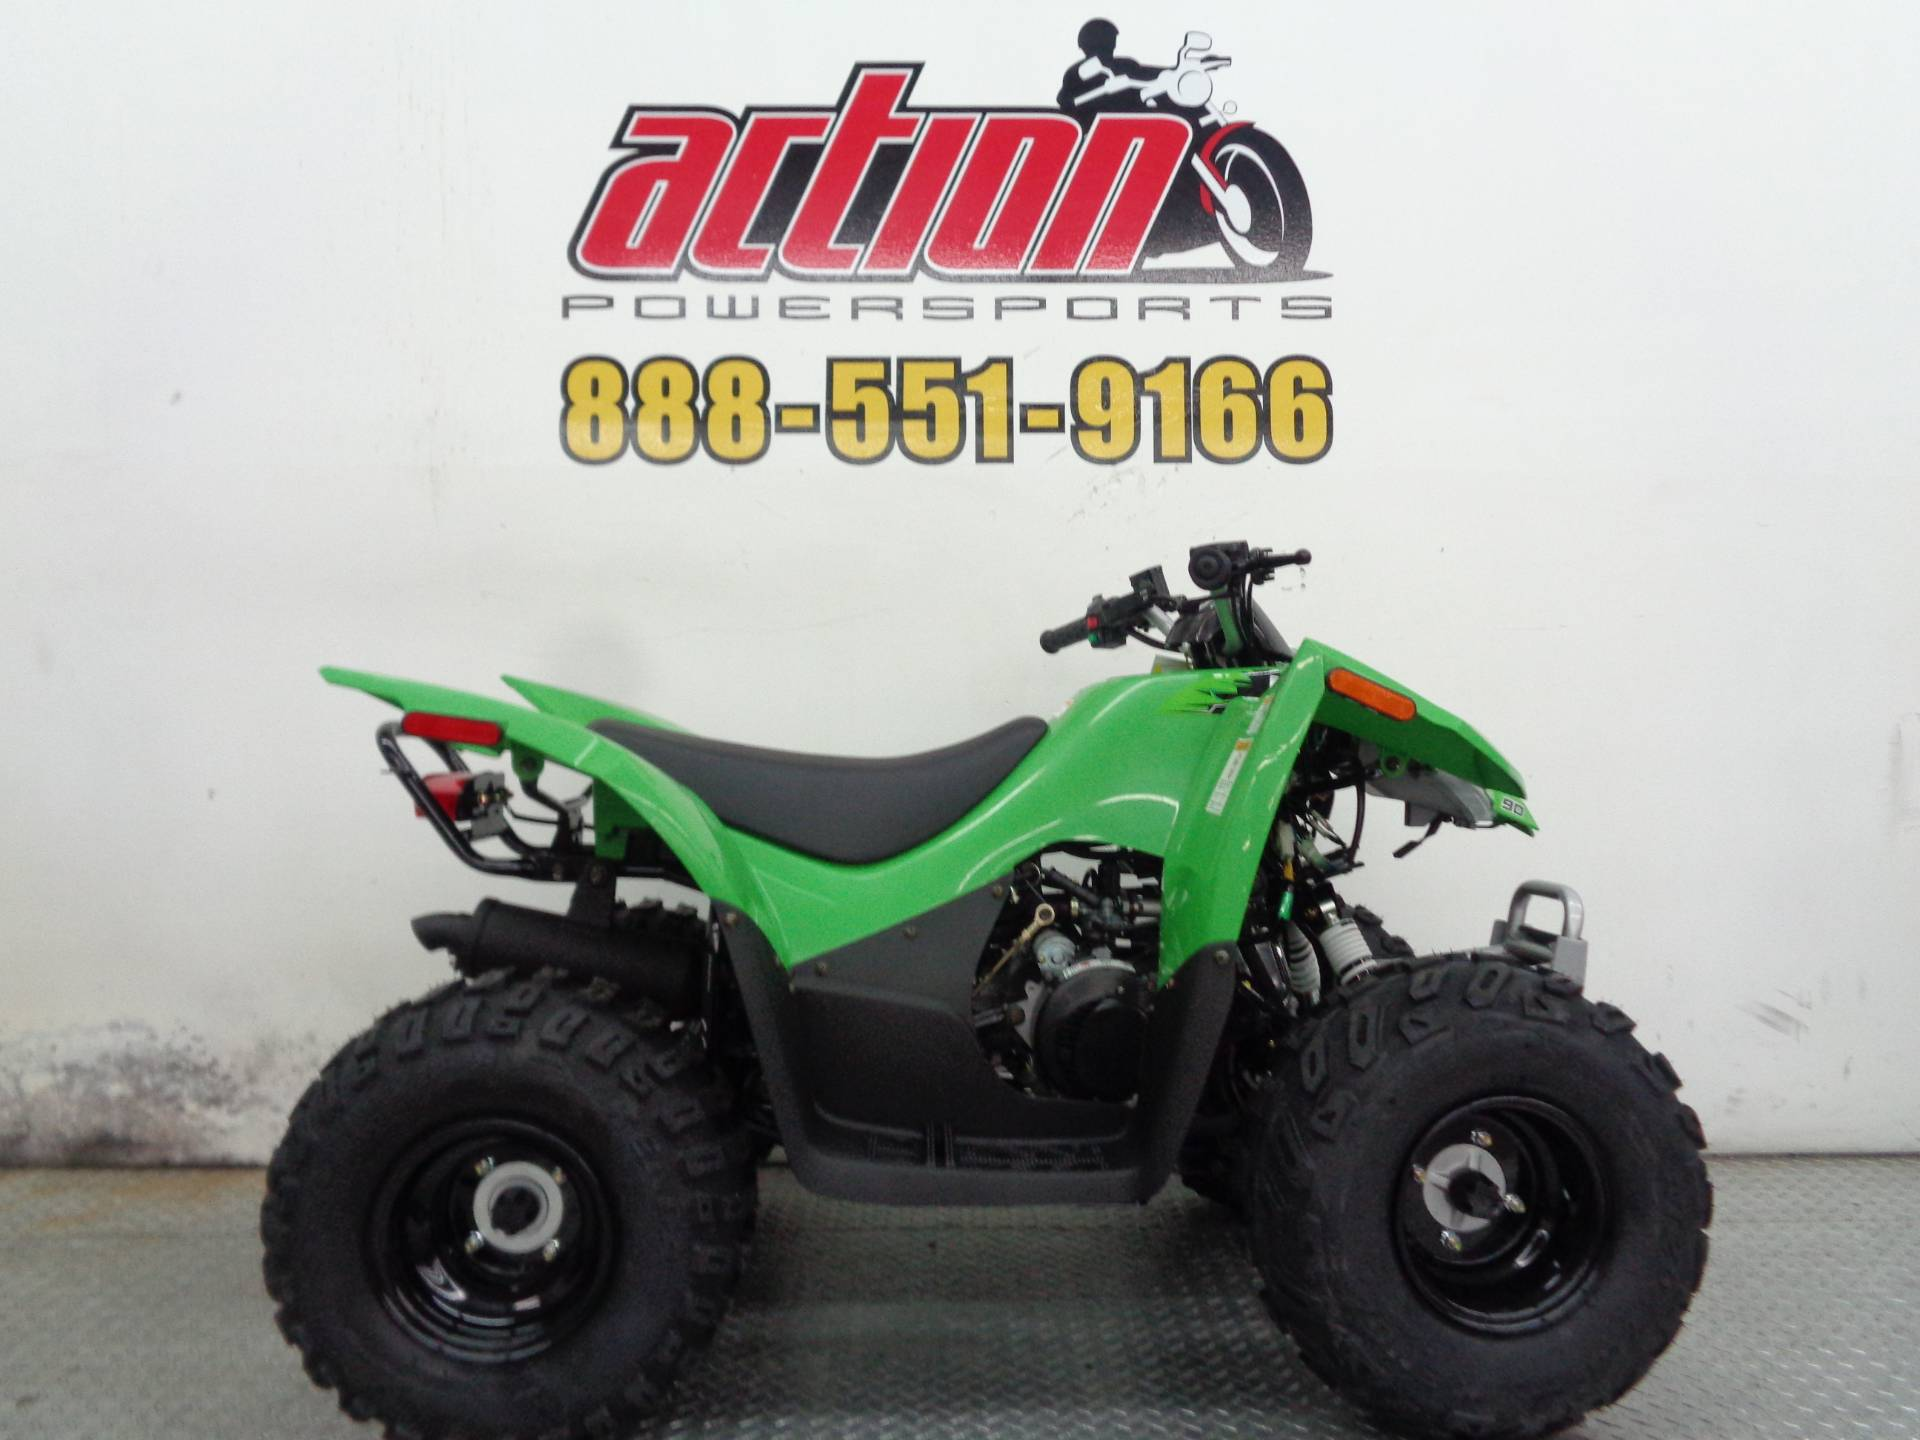 2017 Arctic Cat DVX 90 in Tulsa, Oklahoma